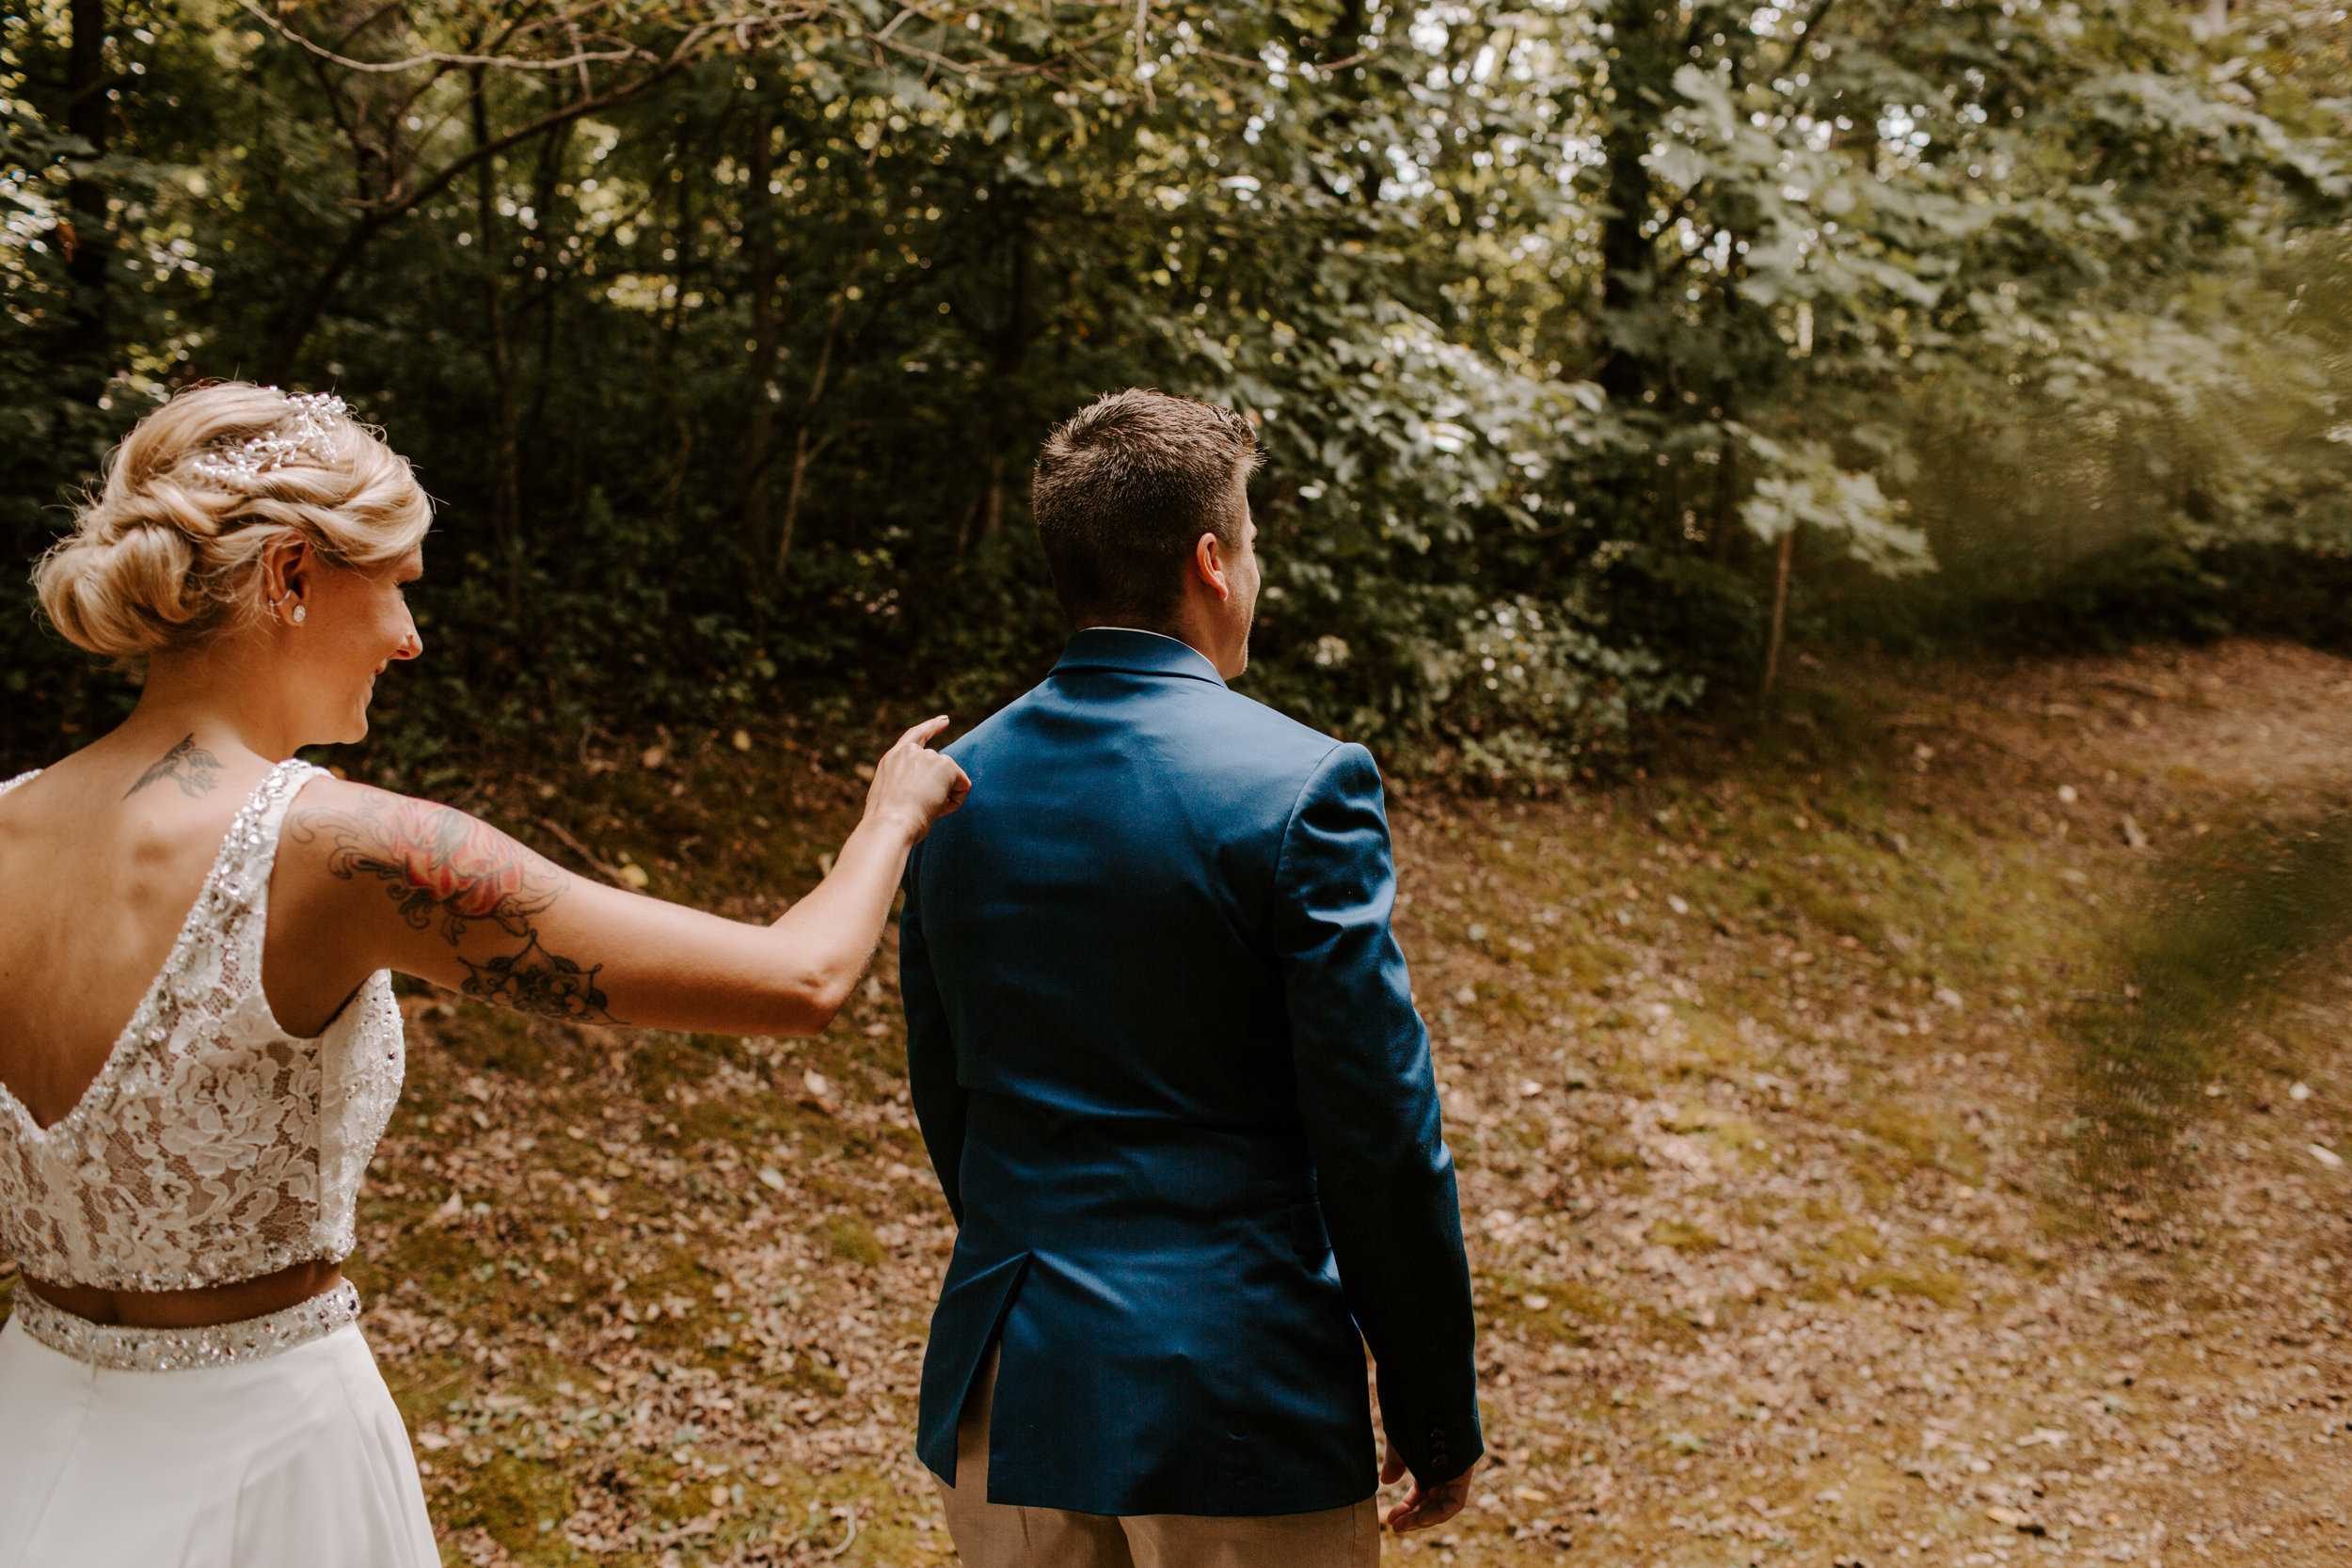 Miranda&braedon_ashevilleelopement (70 of 101).jpg